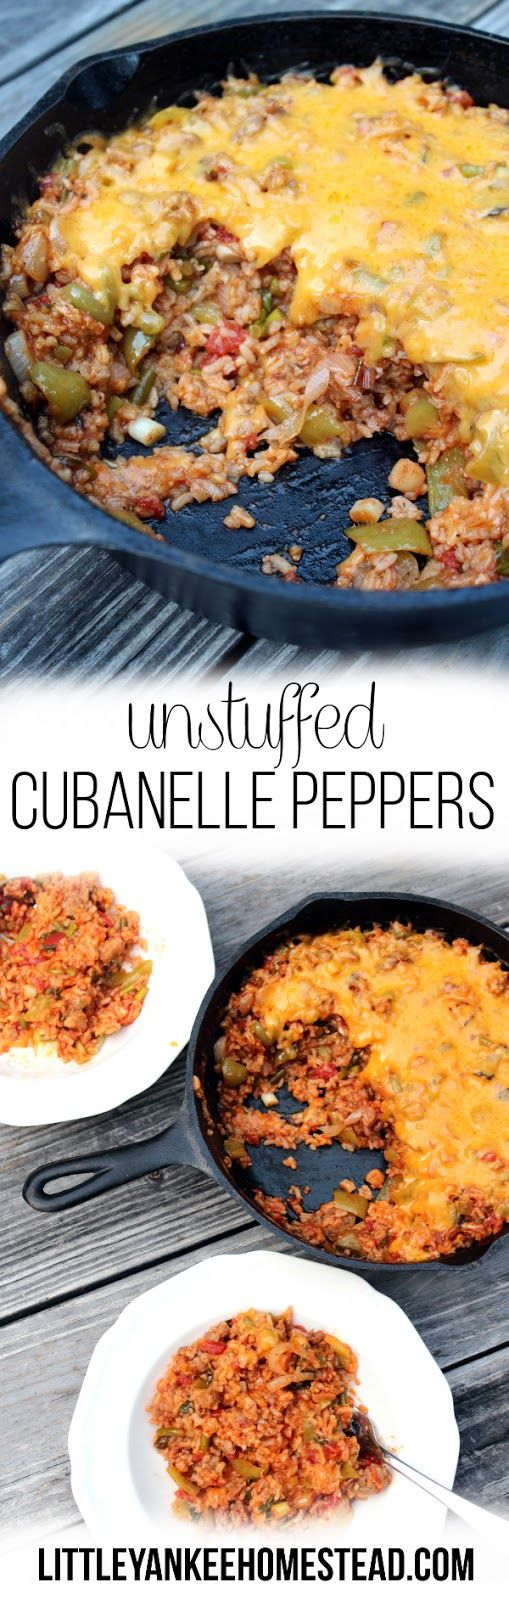 Unstuffed Cubanelle Peppers: an easy skillet recipe using sausage, cubanelle peppers, rice, and garlic scapes. || littleyankeehomestead.com